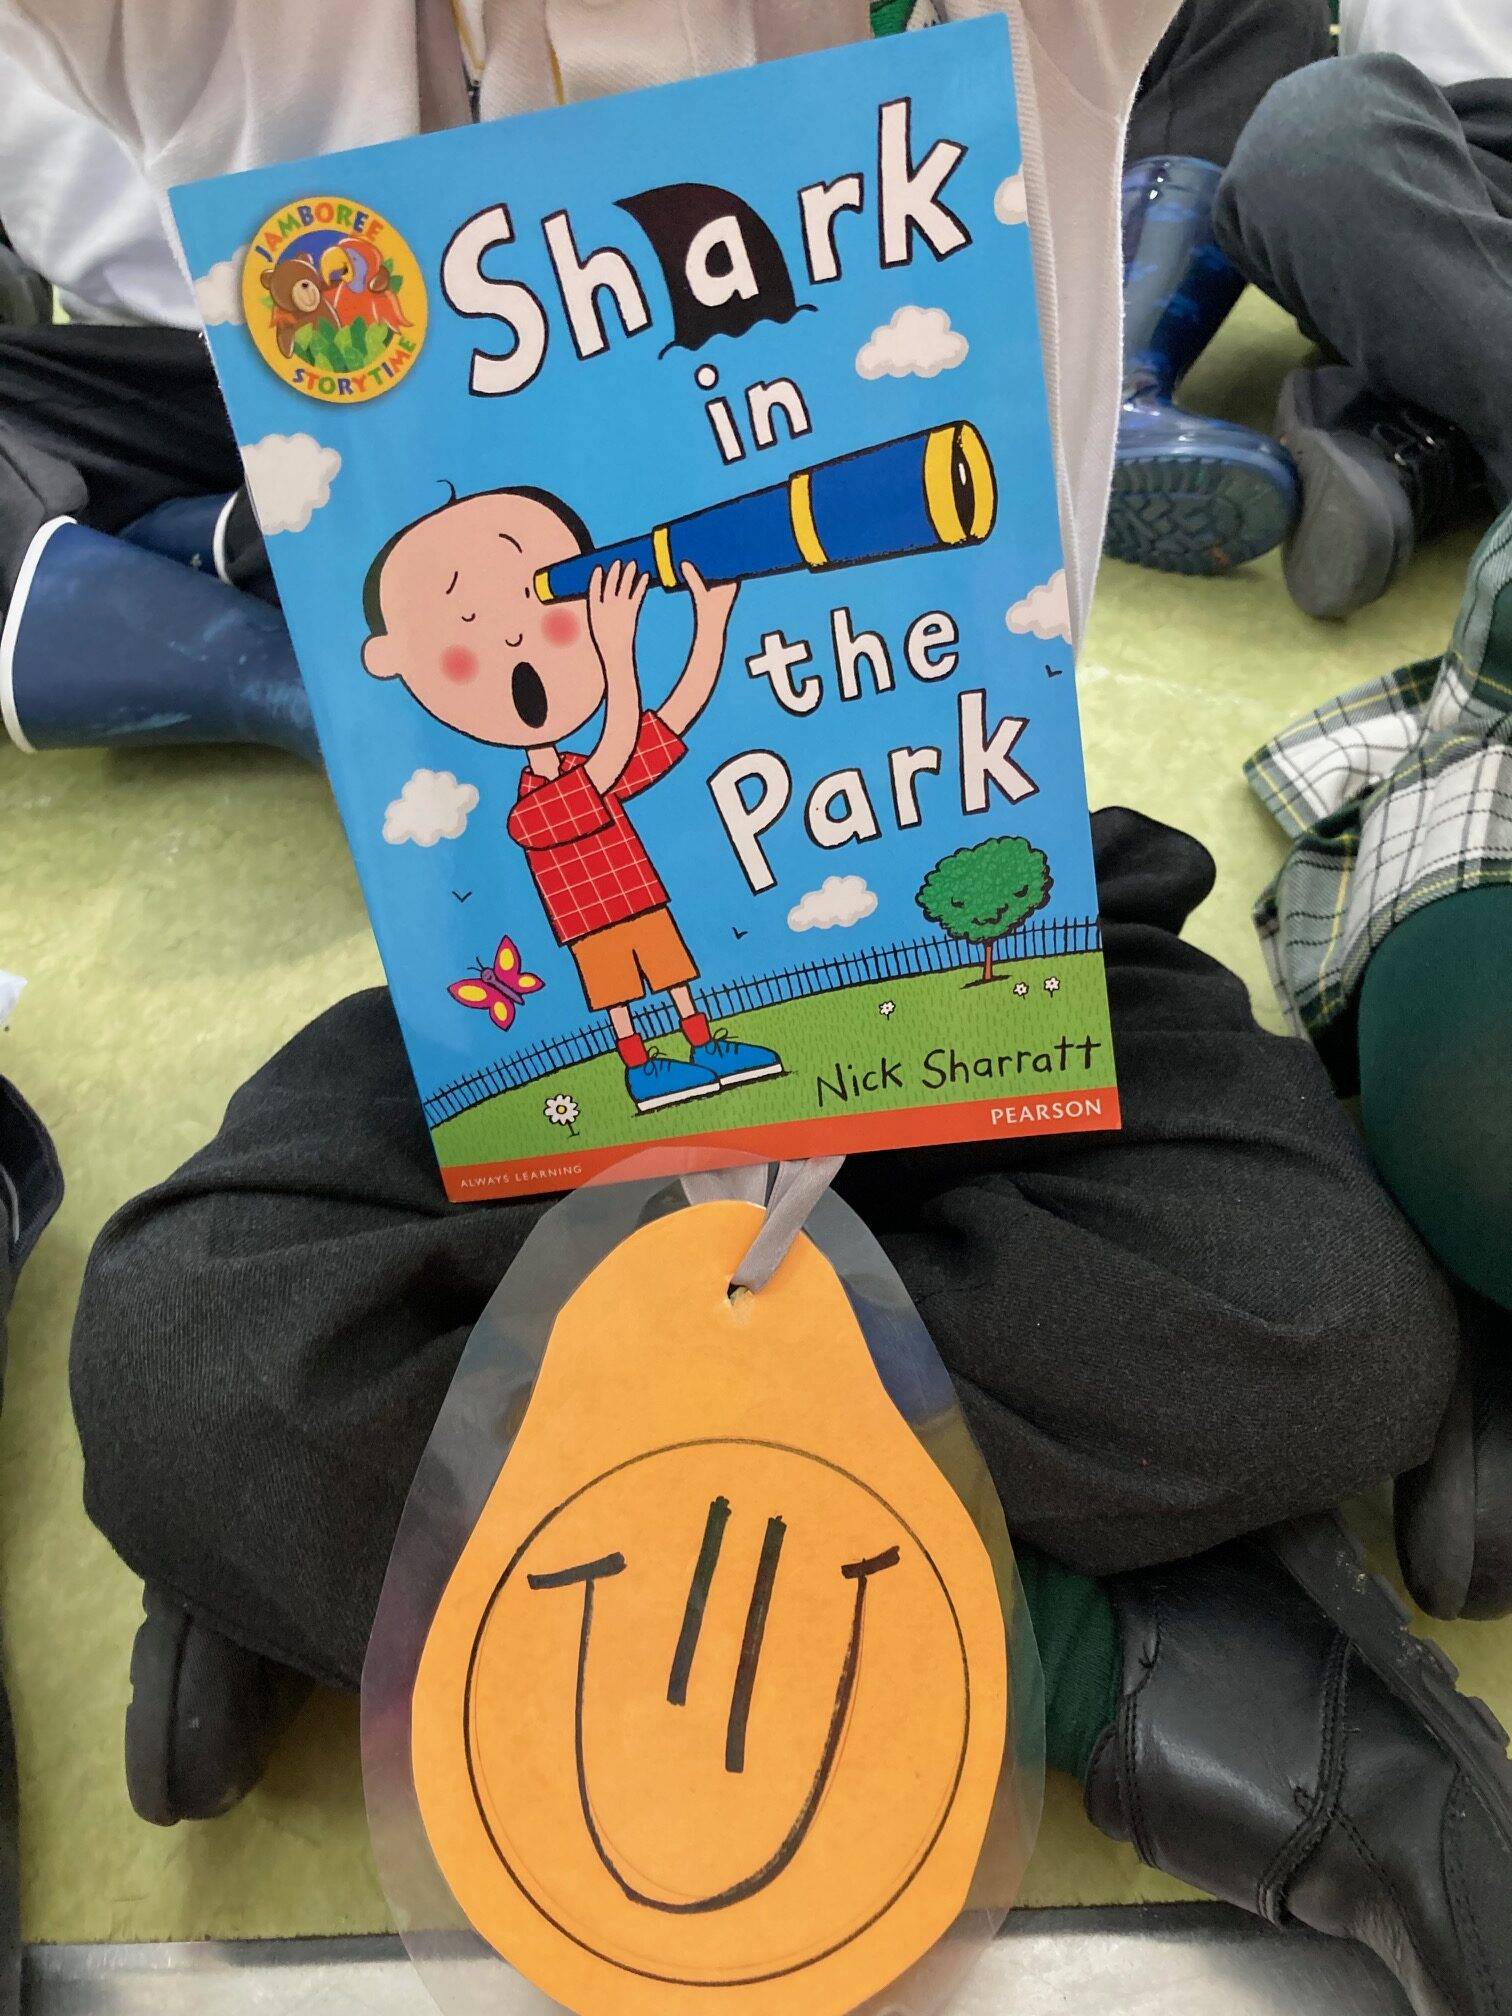 THERE IS A SHARK IN THE PARK!